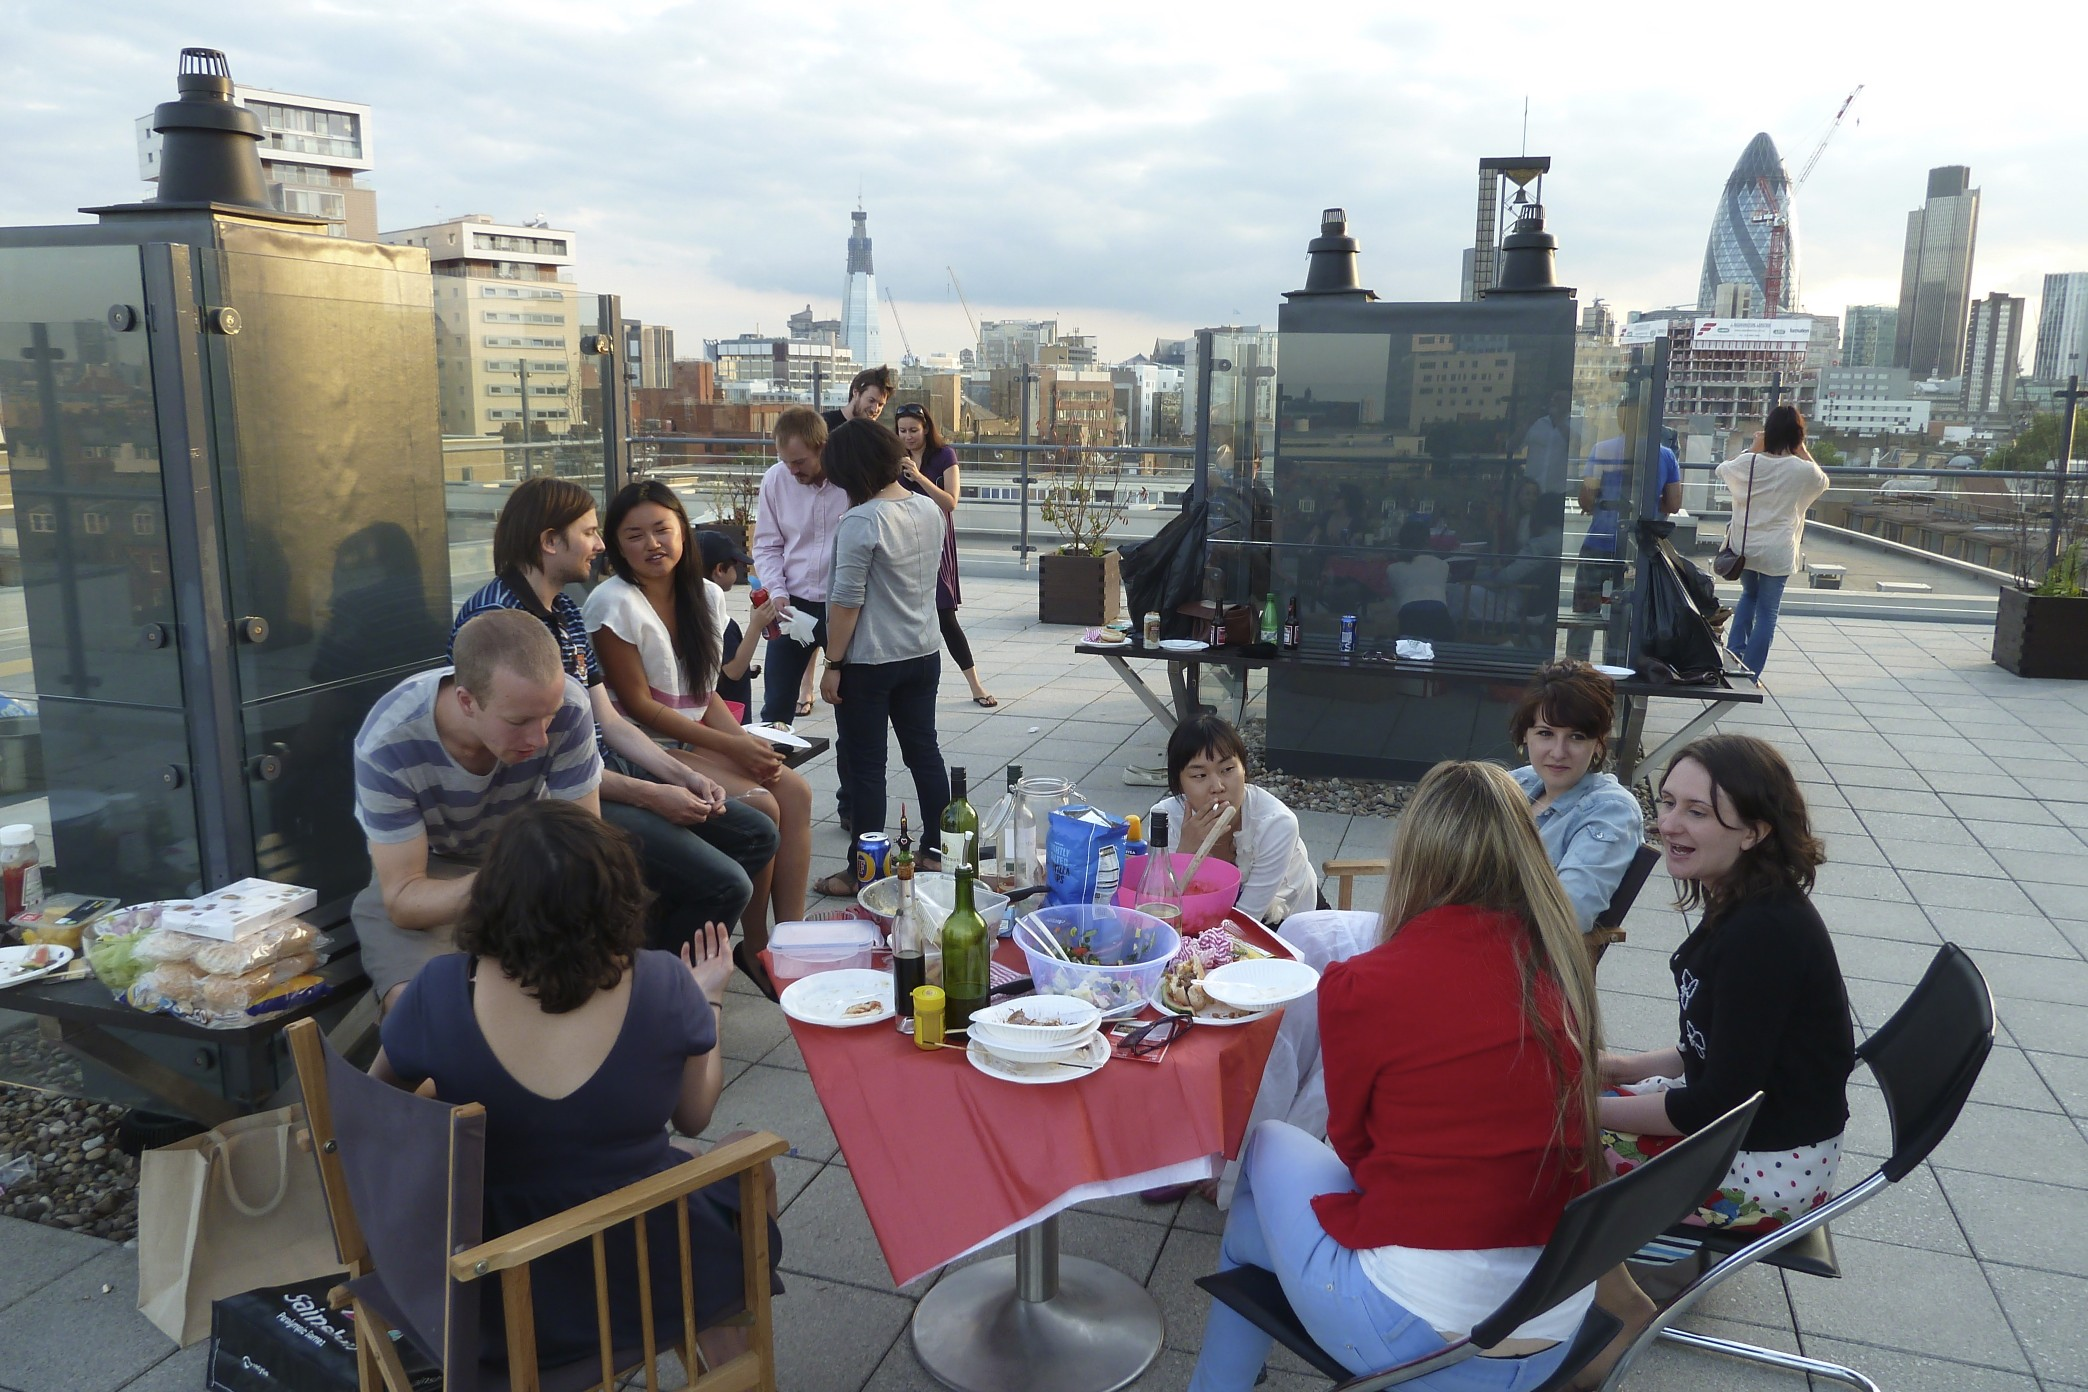 Fourth of July BBQ on Rishi's roof. Gerkin and Shard visible in the background.